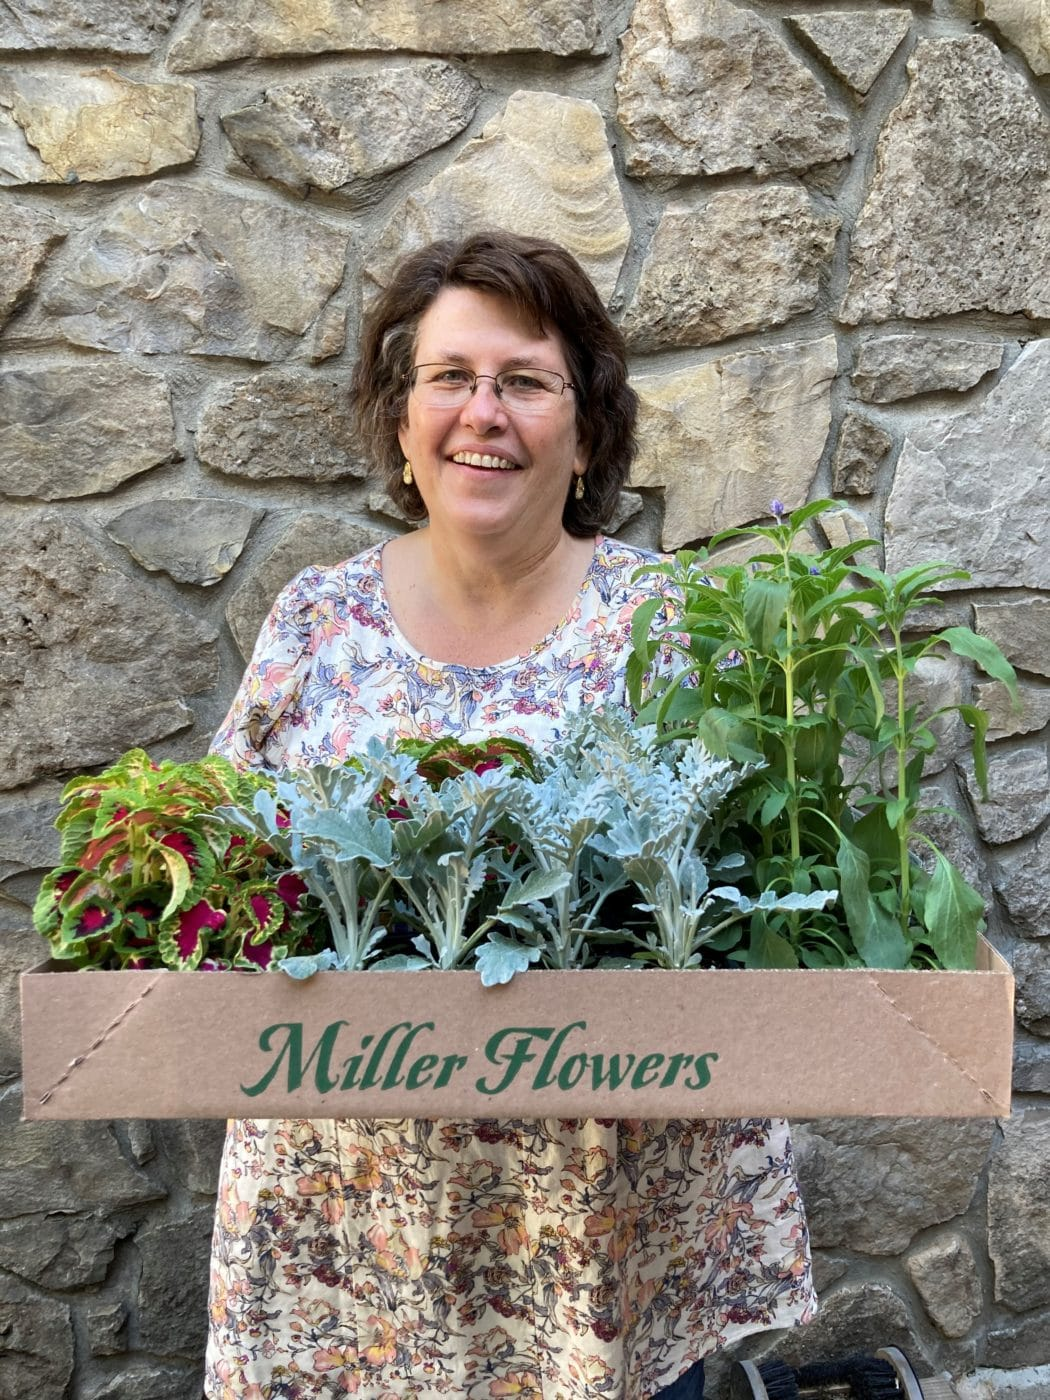 Michelle Evans, the Domestic Trades Manager at Conner Prairie, oversees Foodways and Gardens.